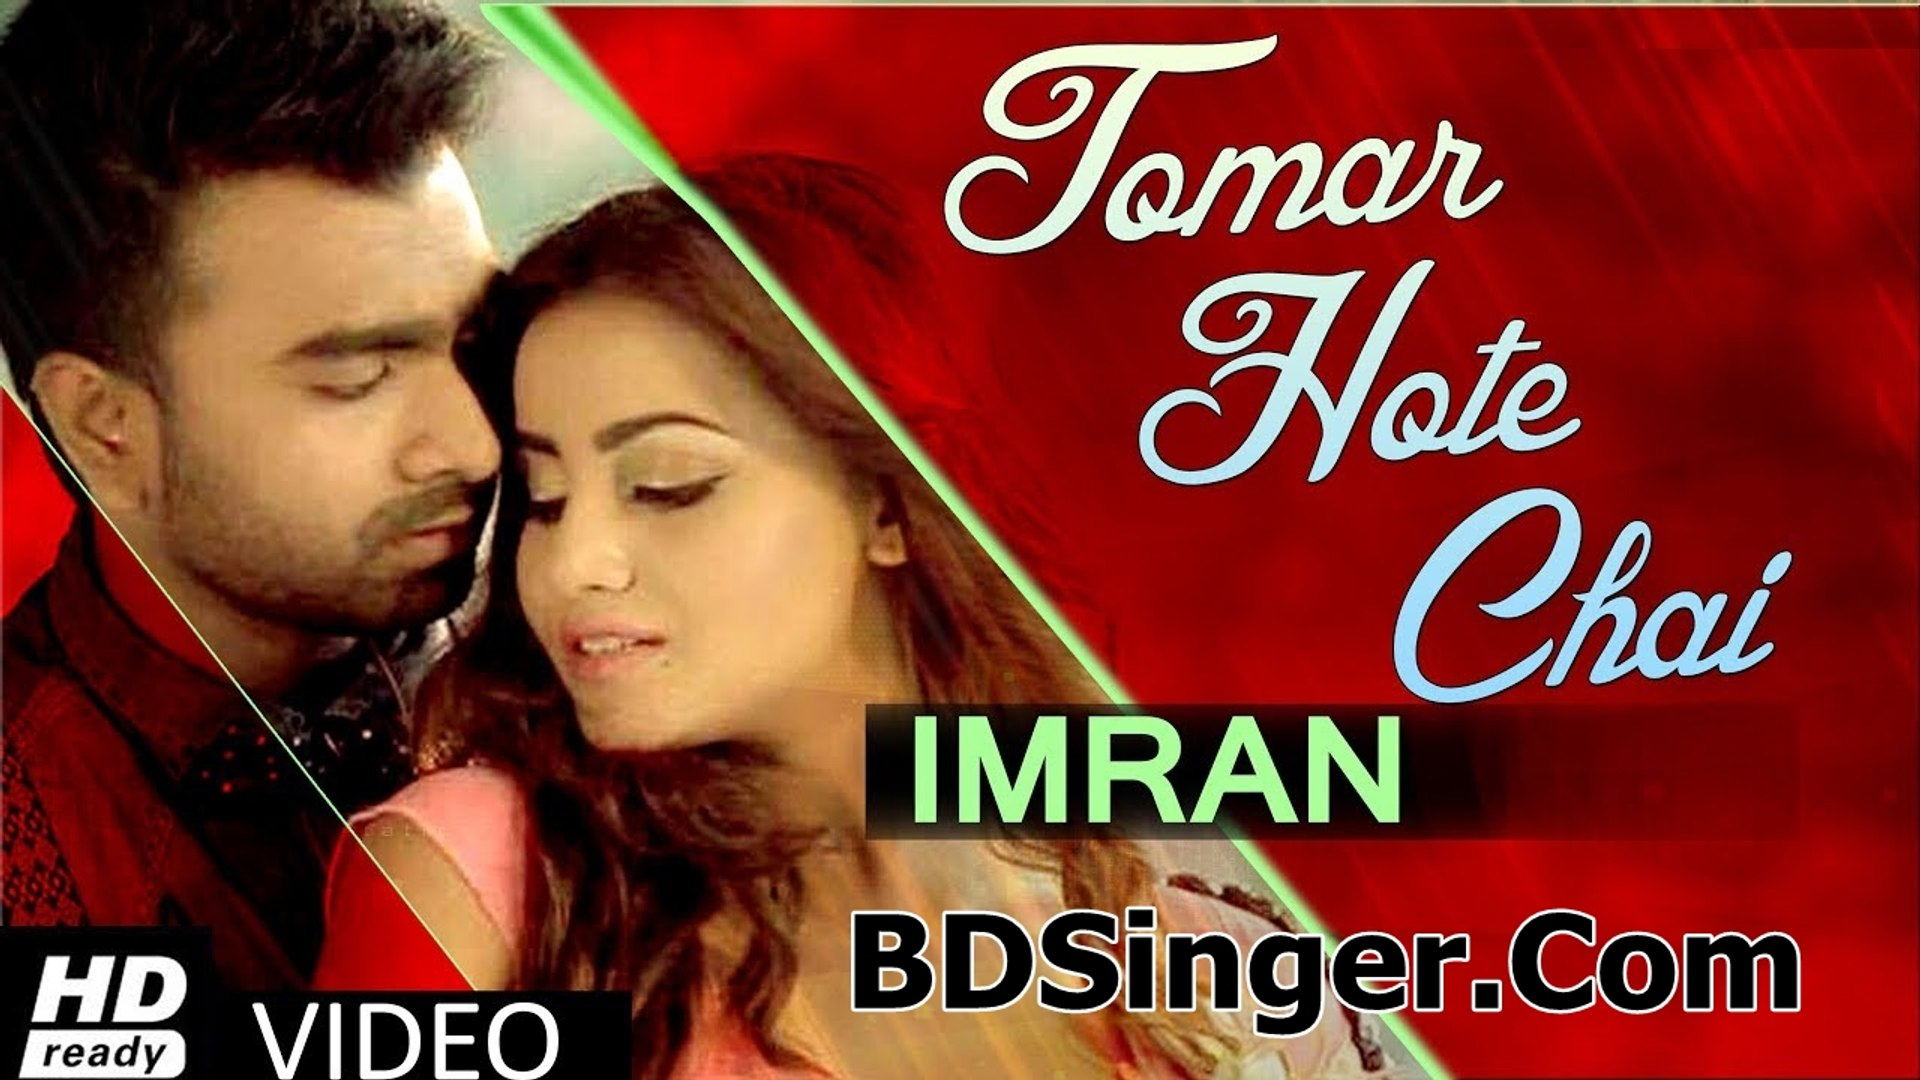 Imran New Song 2017 HD | Tomar Hote Chai | Imran Mahmudul | Bangla New Song  2017